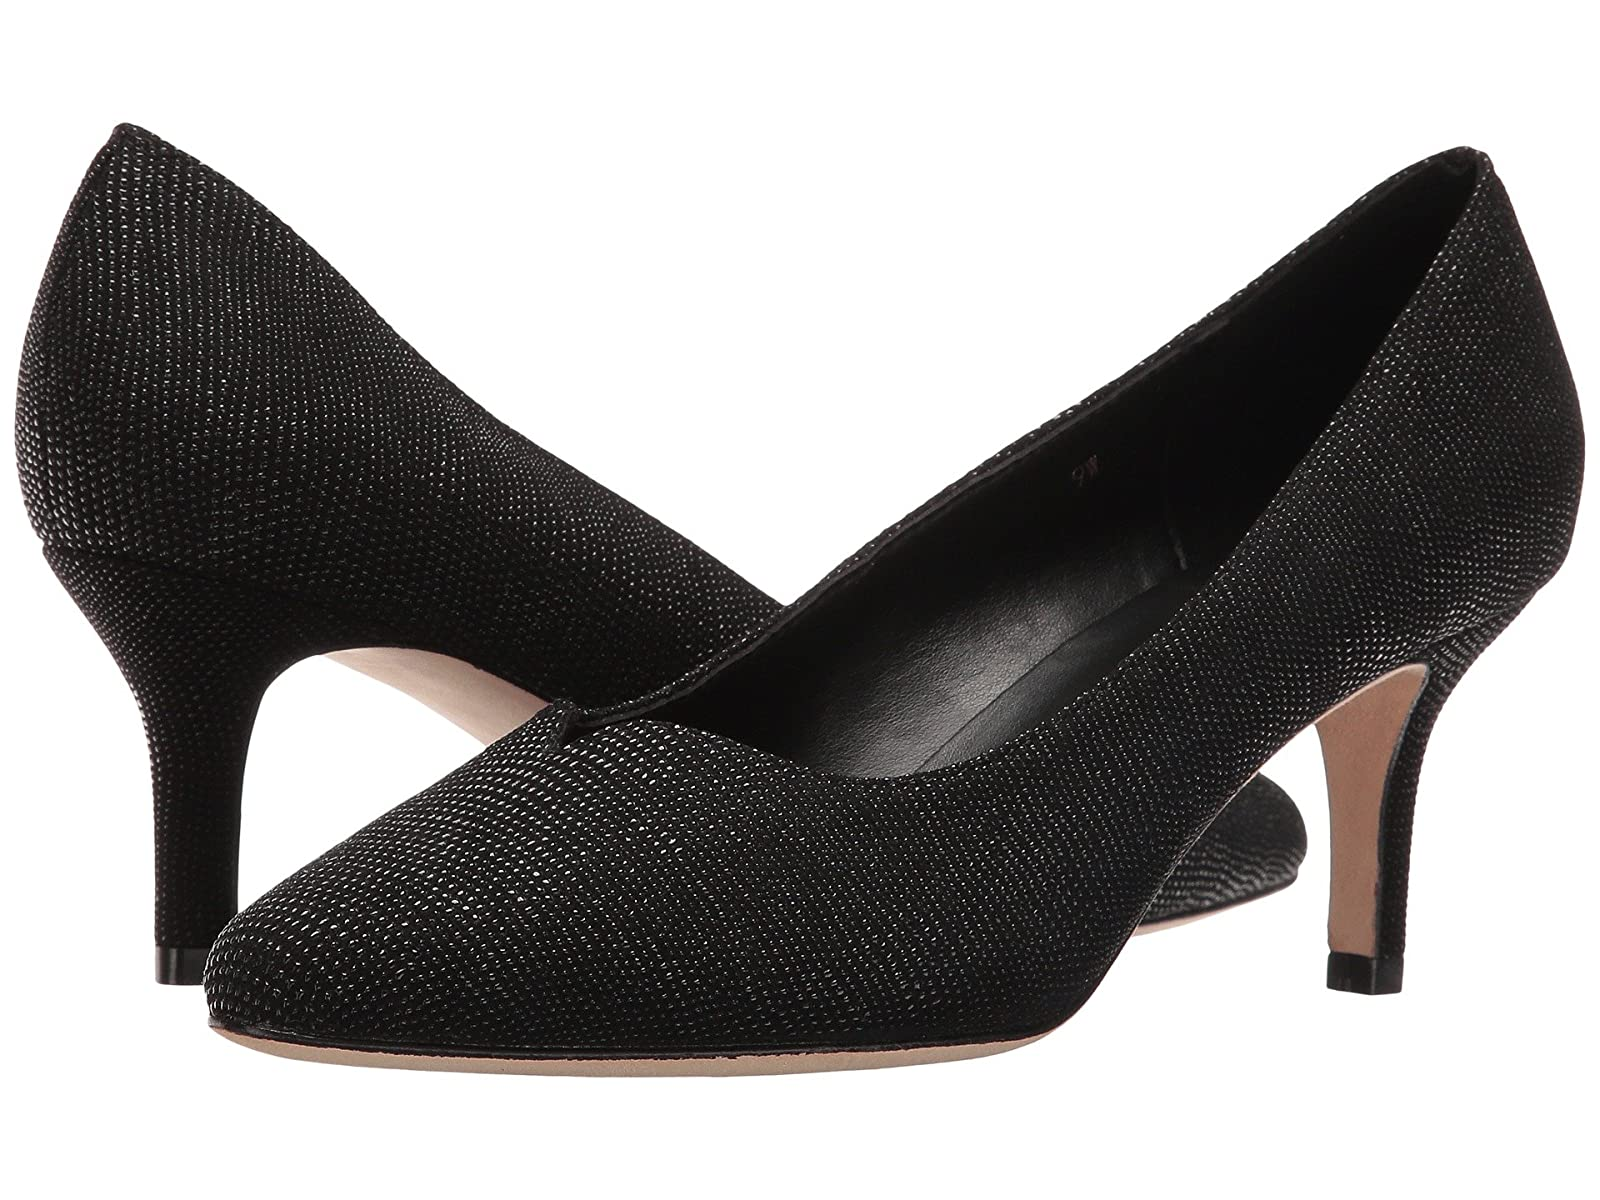 Vaneli LindenCheap and distinctive eye-catching shoes